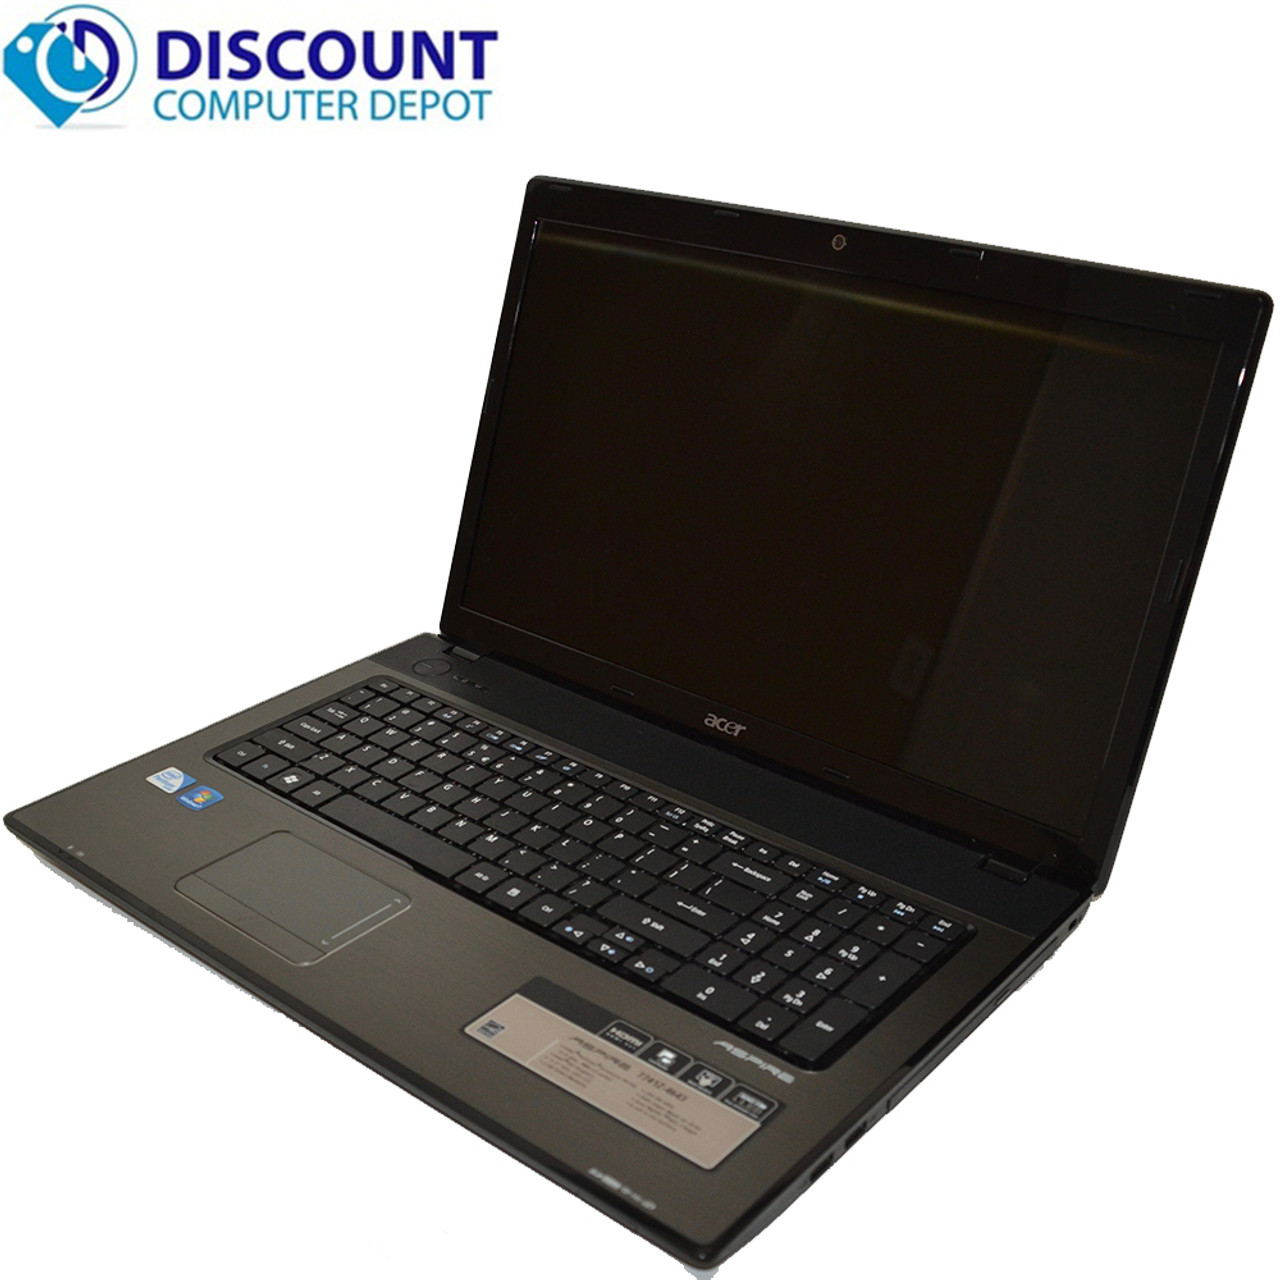 ACER ASPIRE 7741G INTEL WLAN DRIVER DOWNLOAD FREE